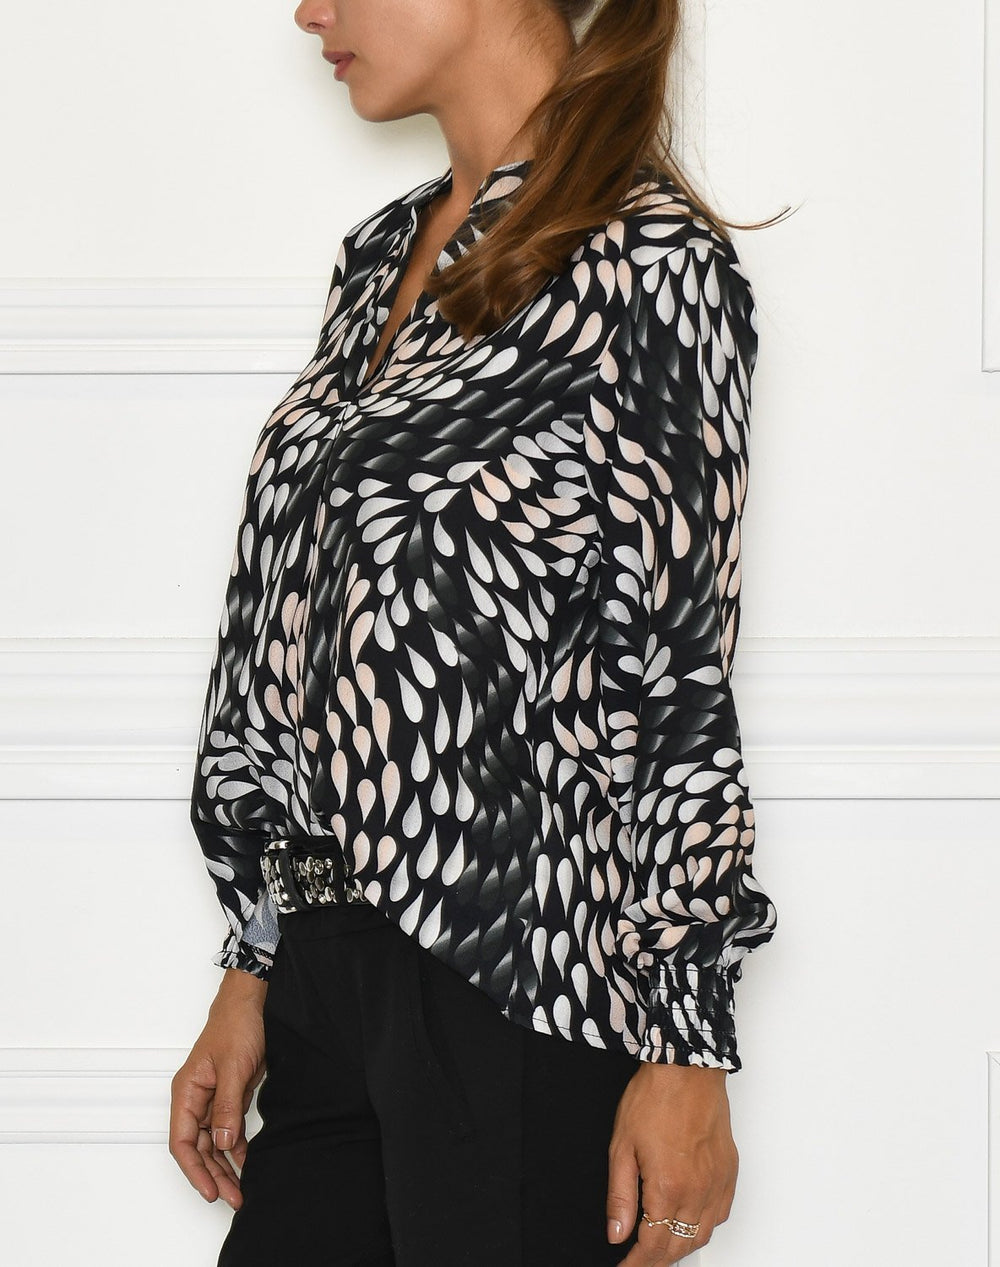 Milly bluse black mix - Online-Mode